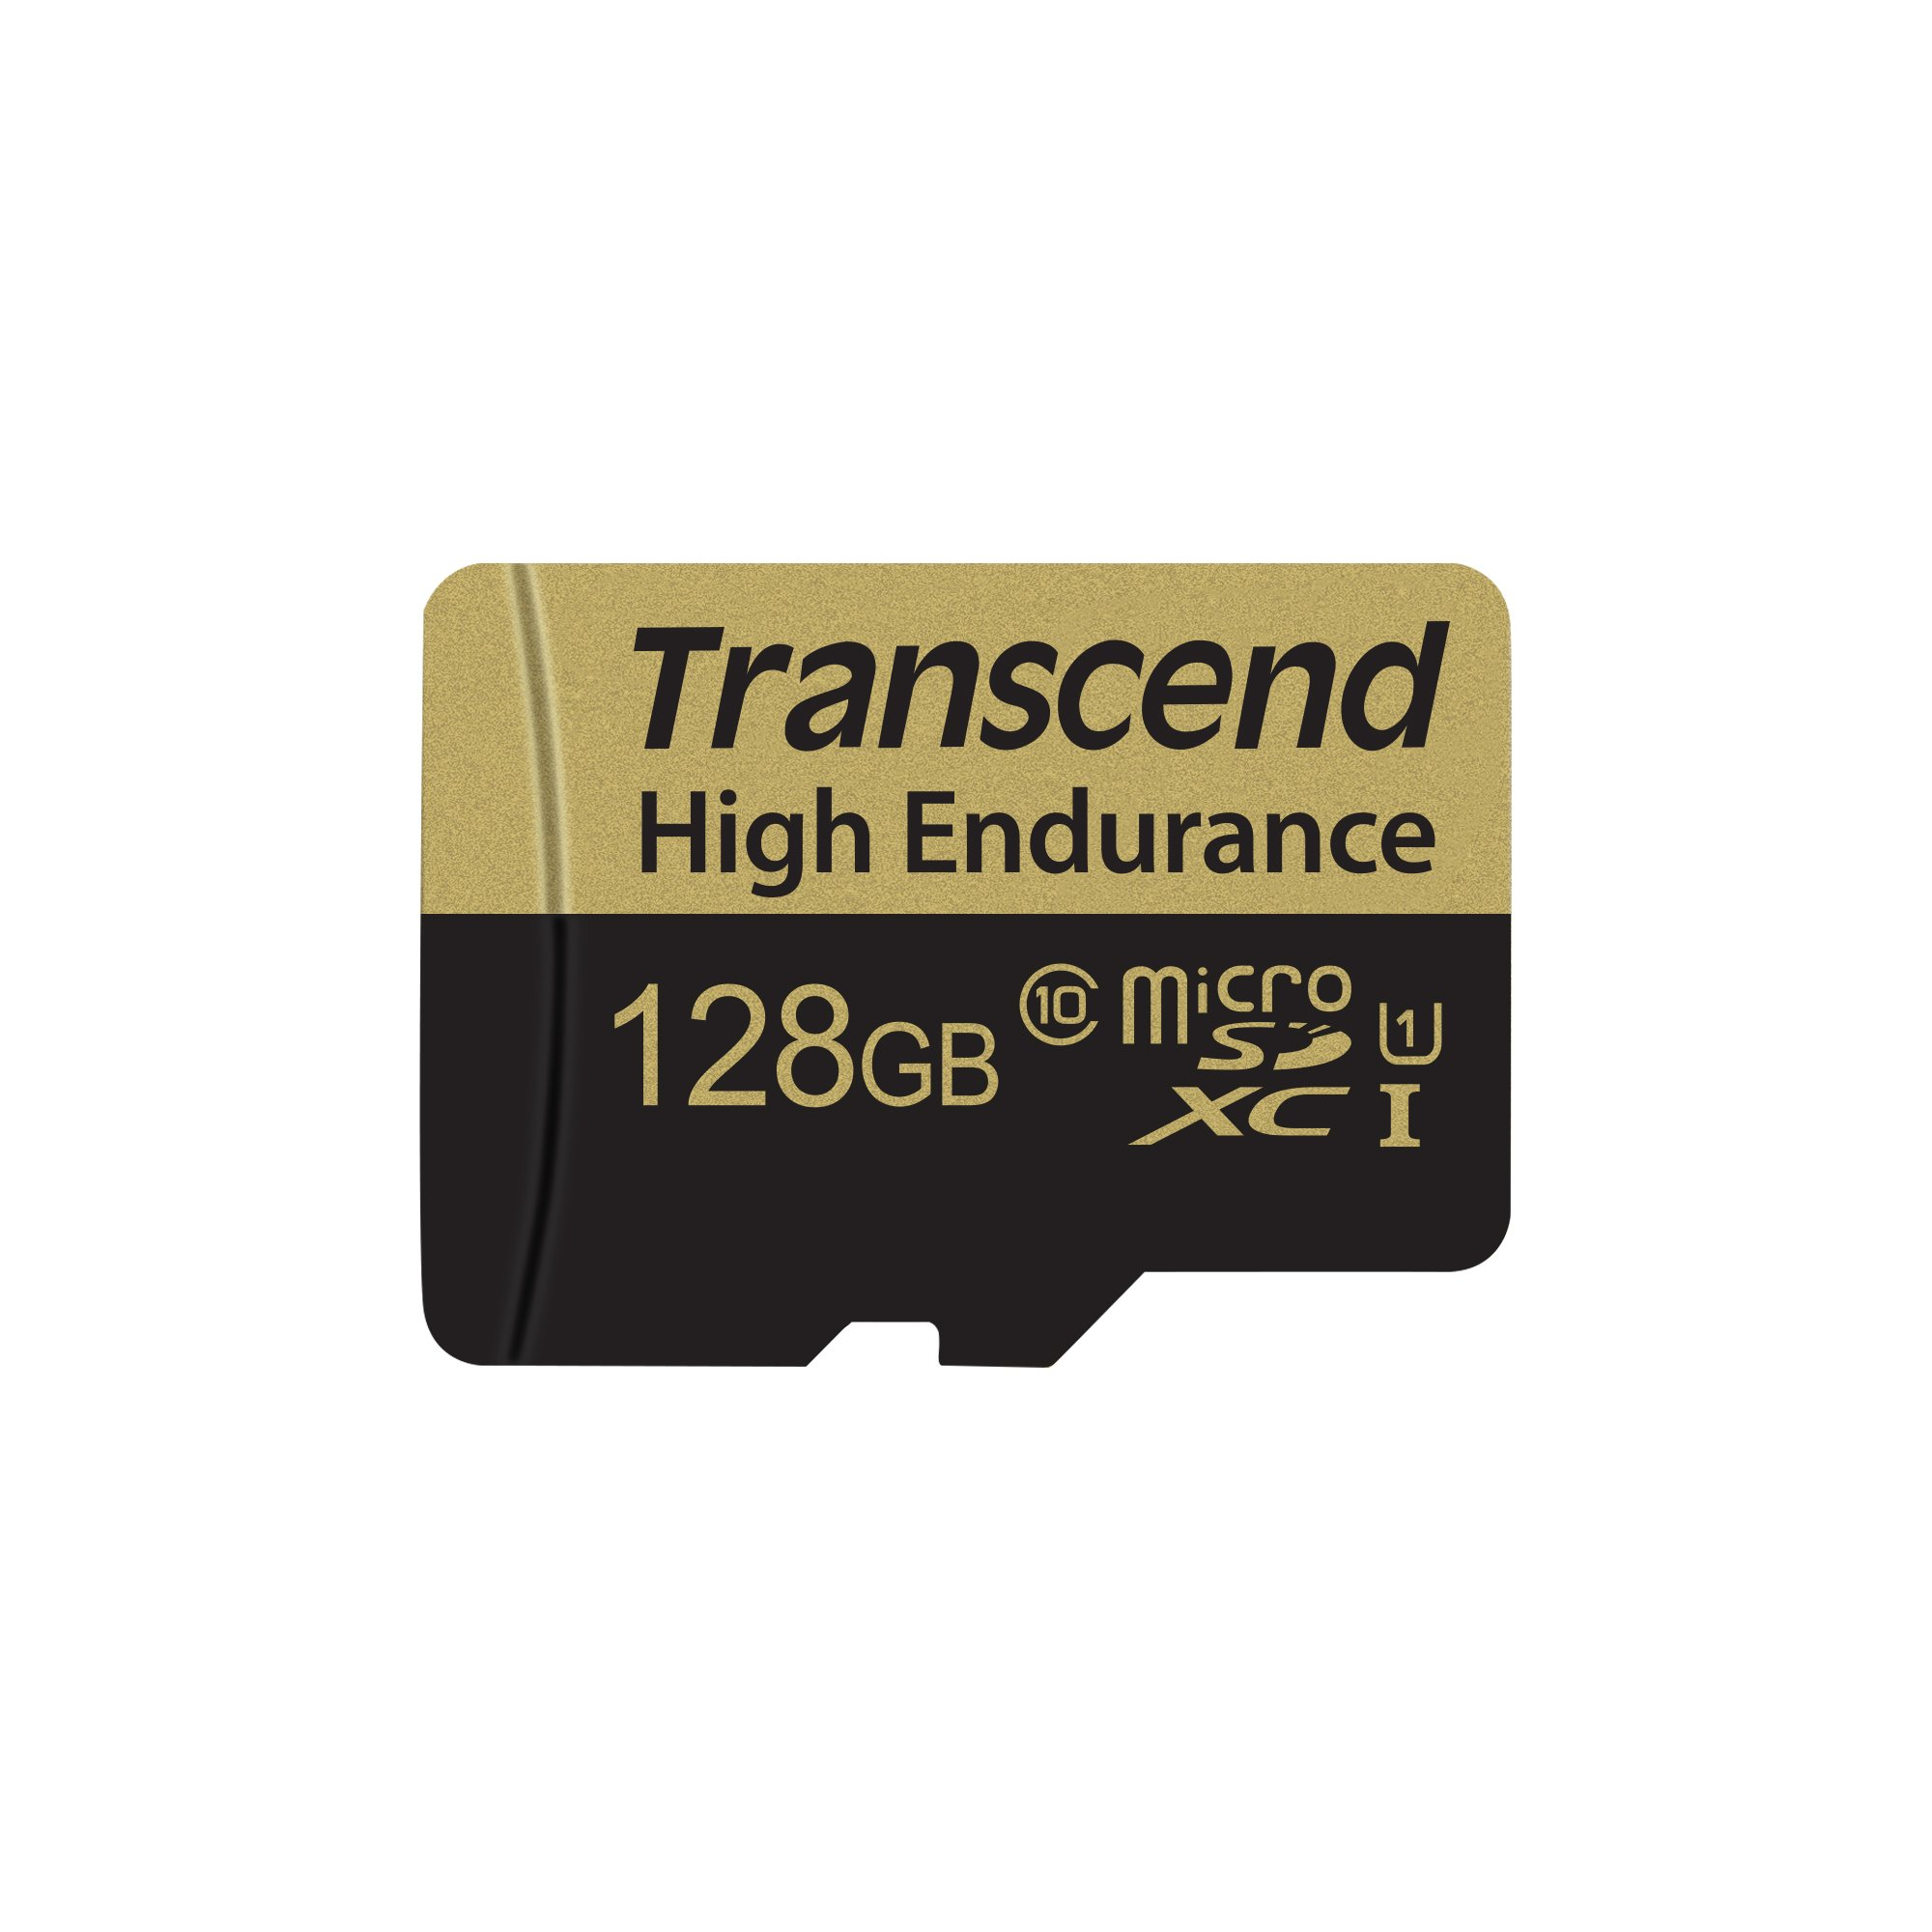 Transcend TS128GUSDXC10V Information 128GB High Endurance MicroSD Memory Card with Adapter by Transcend